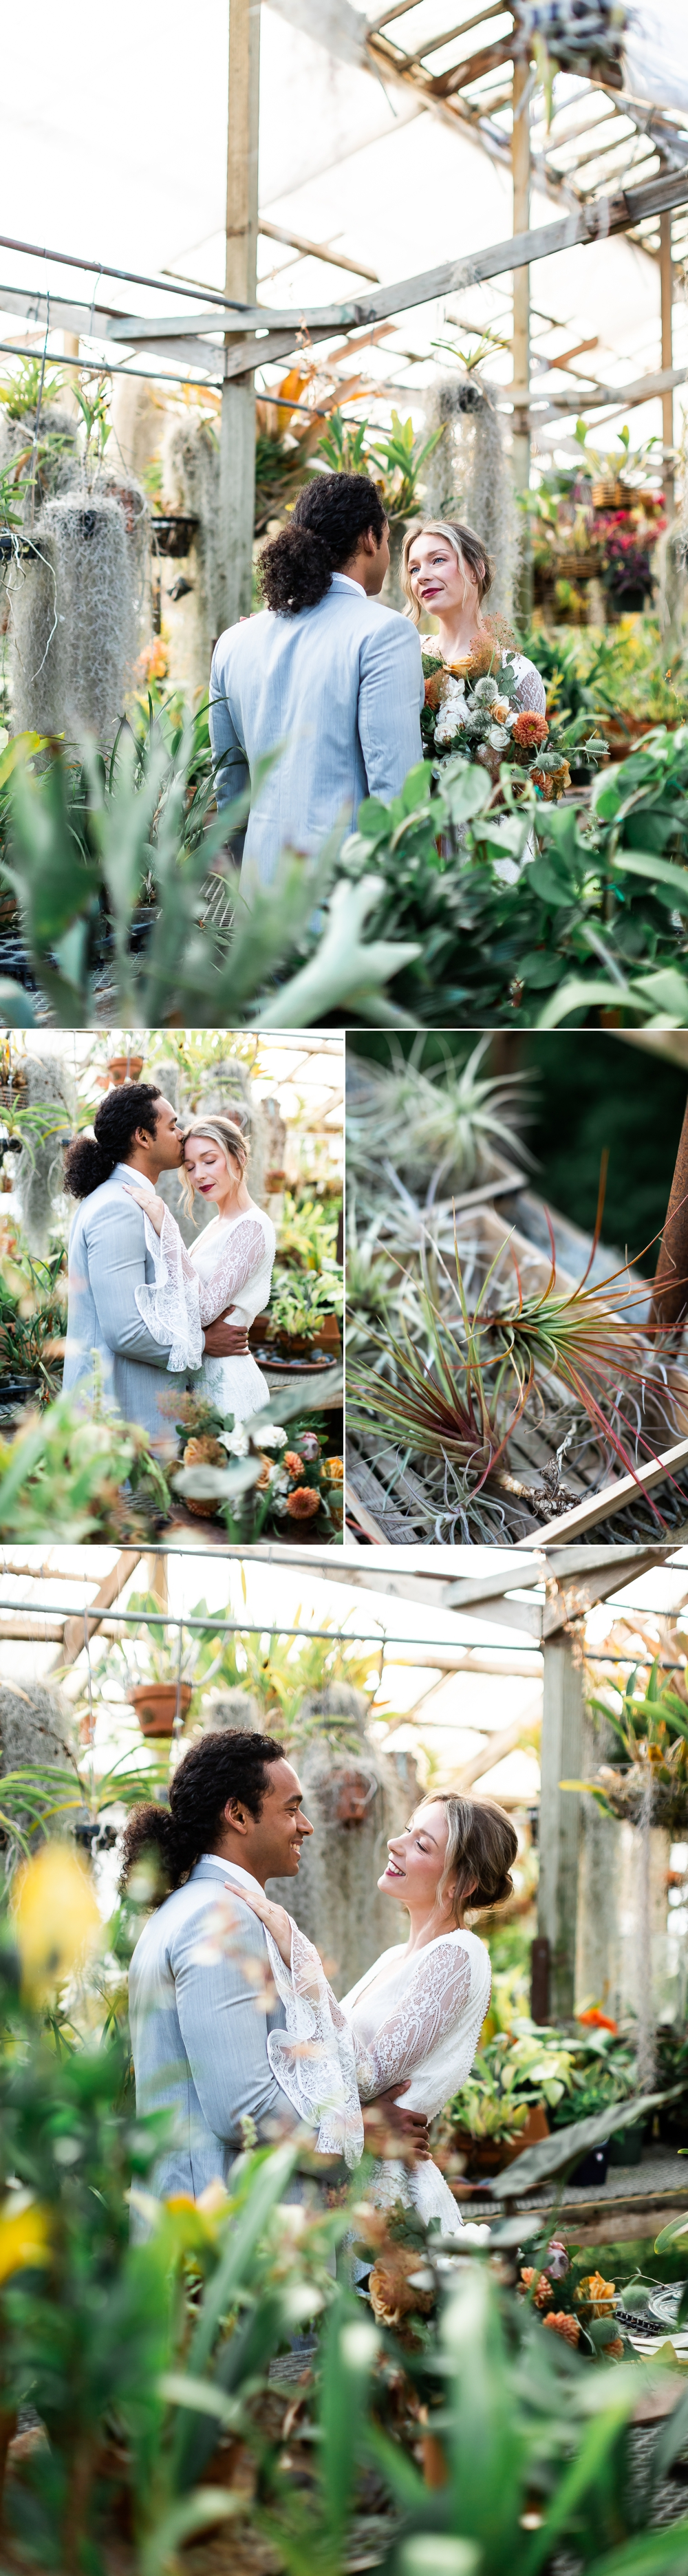 Shelldance Orchid Garden Wedding, Kreate Photography, Boho Weddings